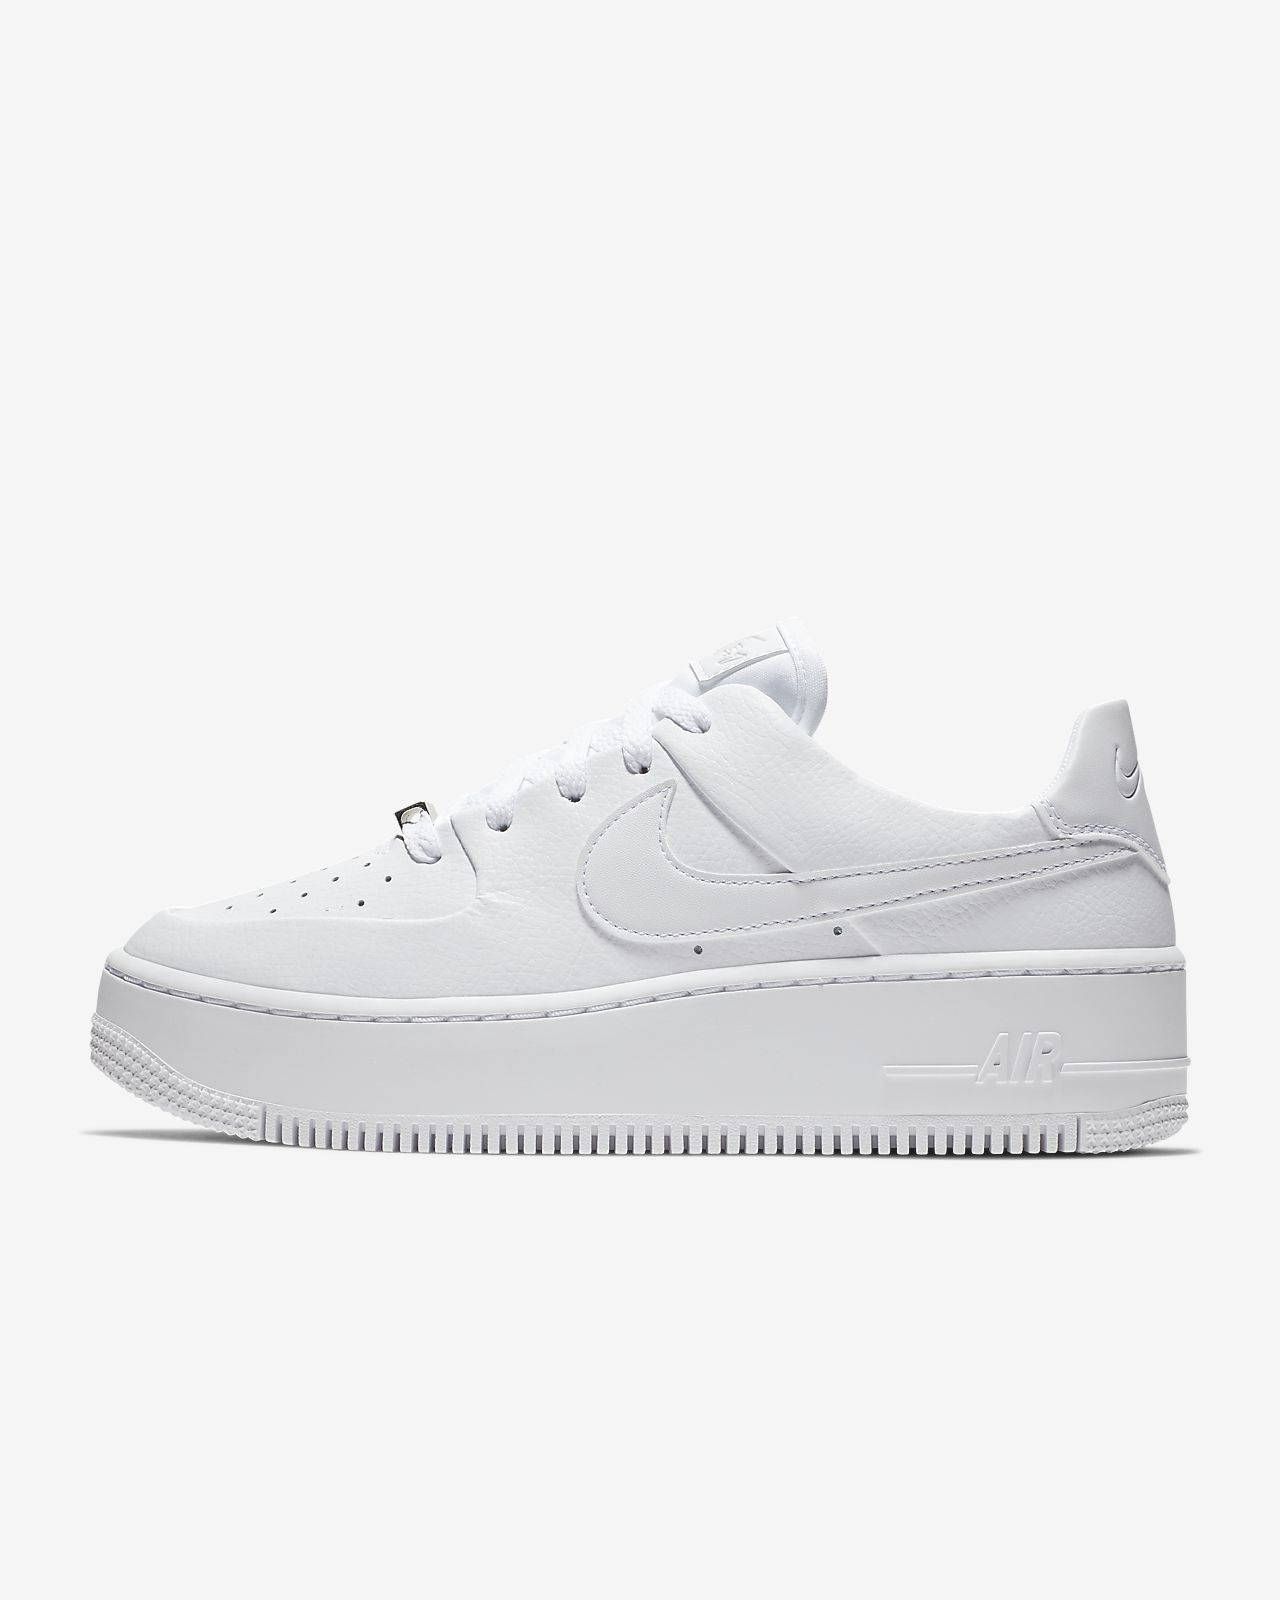 reputable site f7da9 07ea0 Nike Air Force 1 Sage Low Womens Shoe